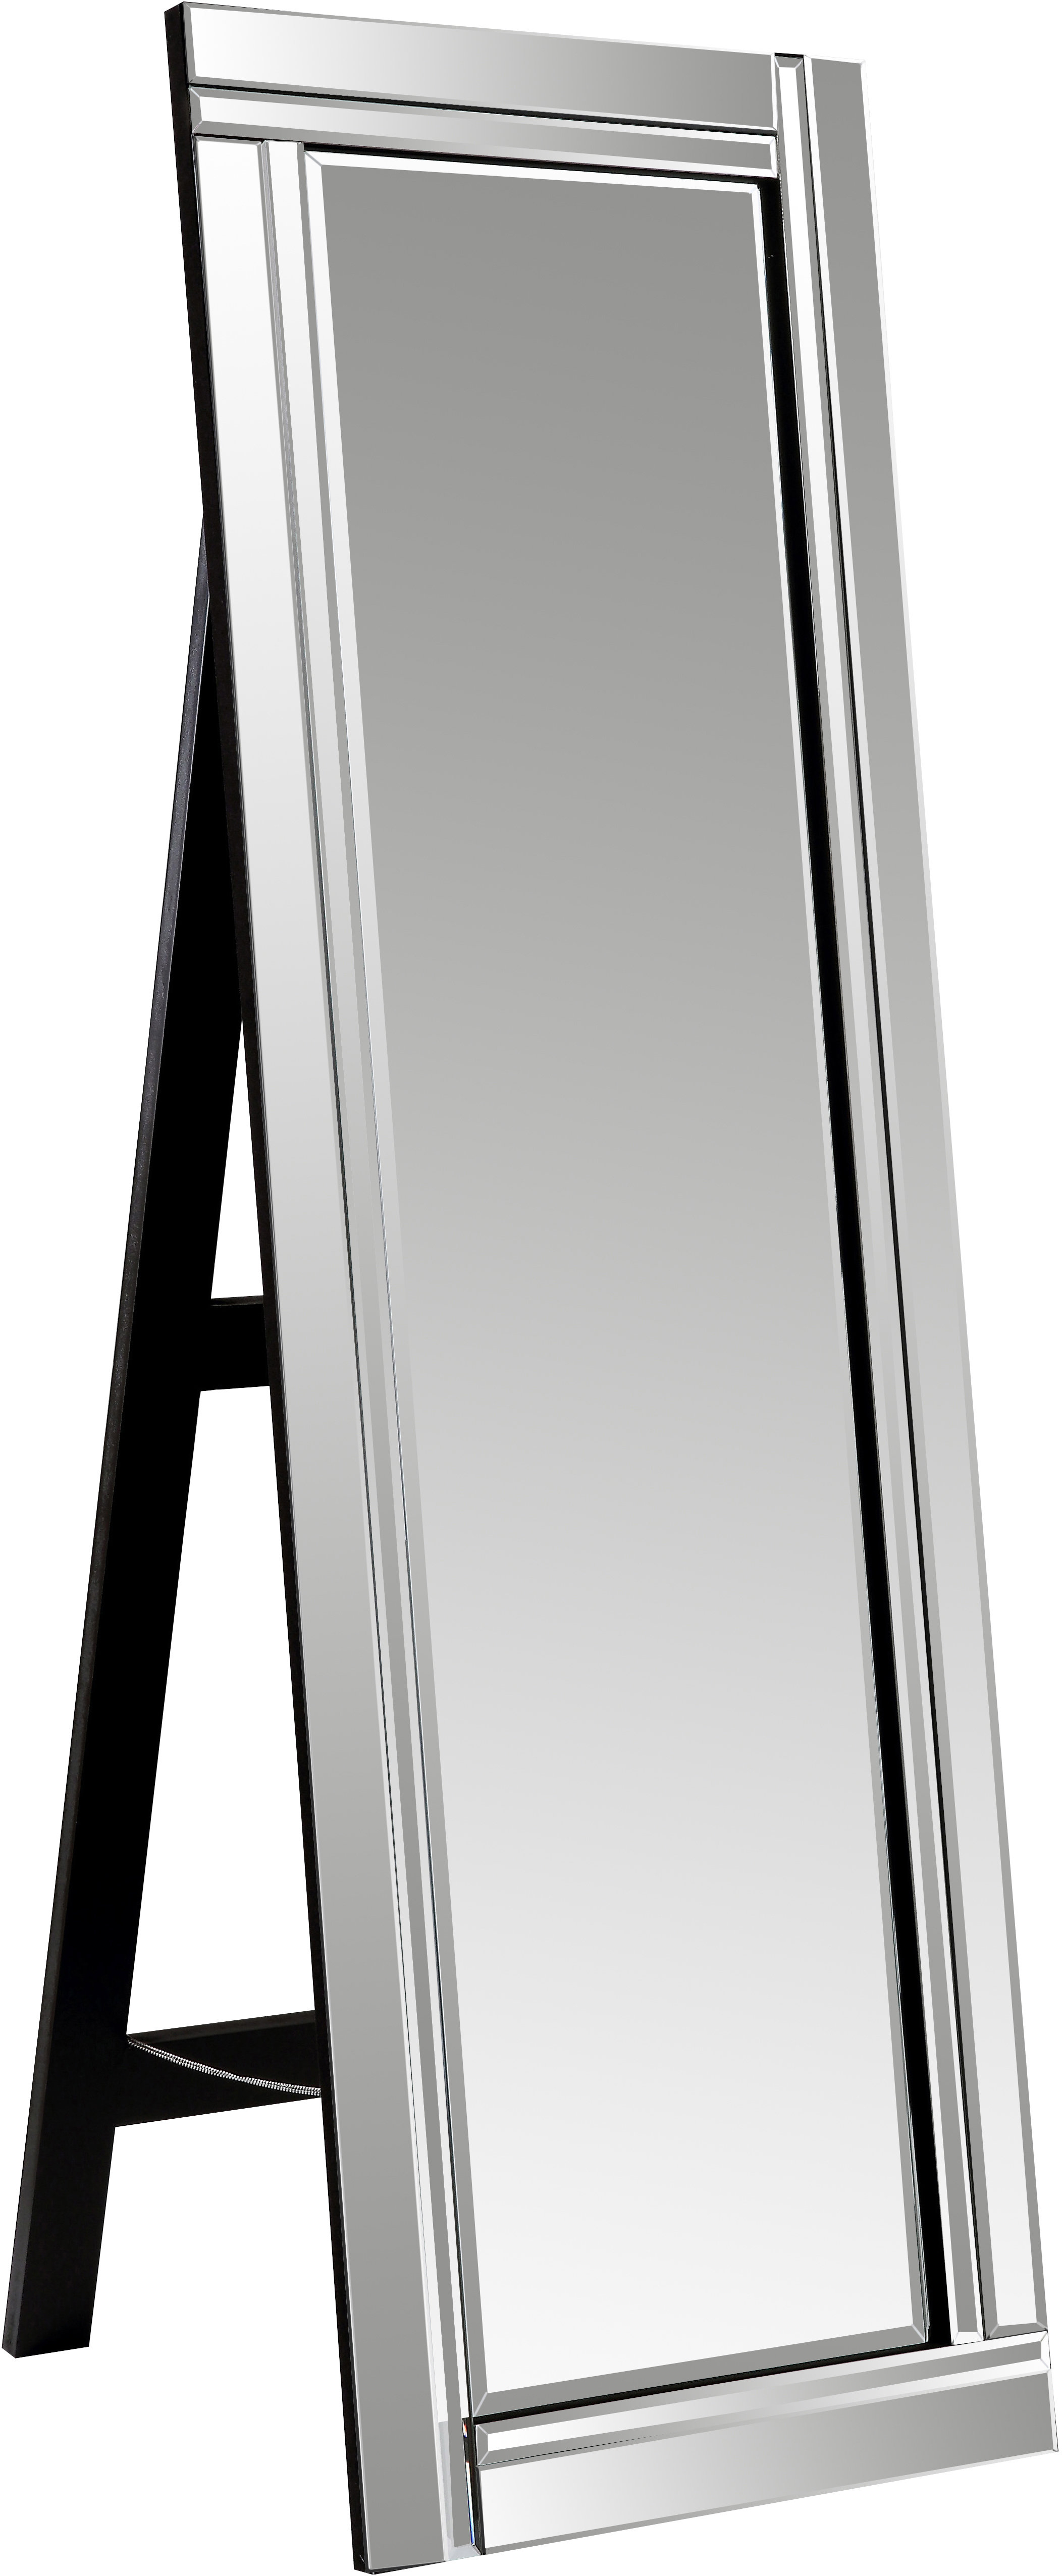 Full Length Mirror With Regard To Dalessio Wide Tall Full Length Mirrors (View 14 of 30)